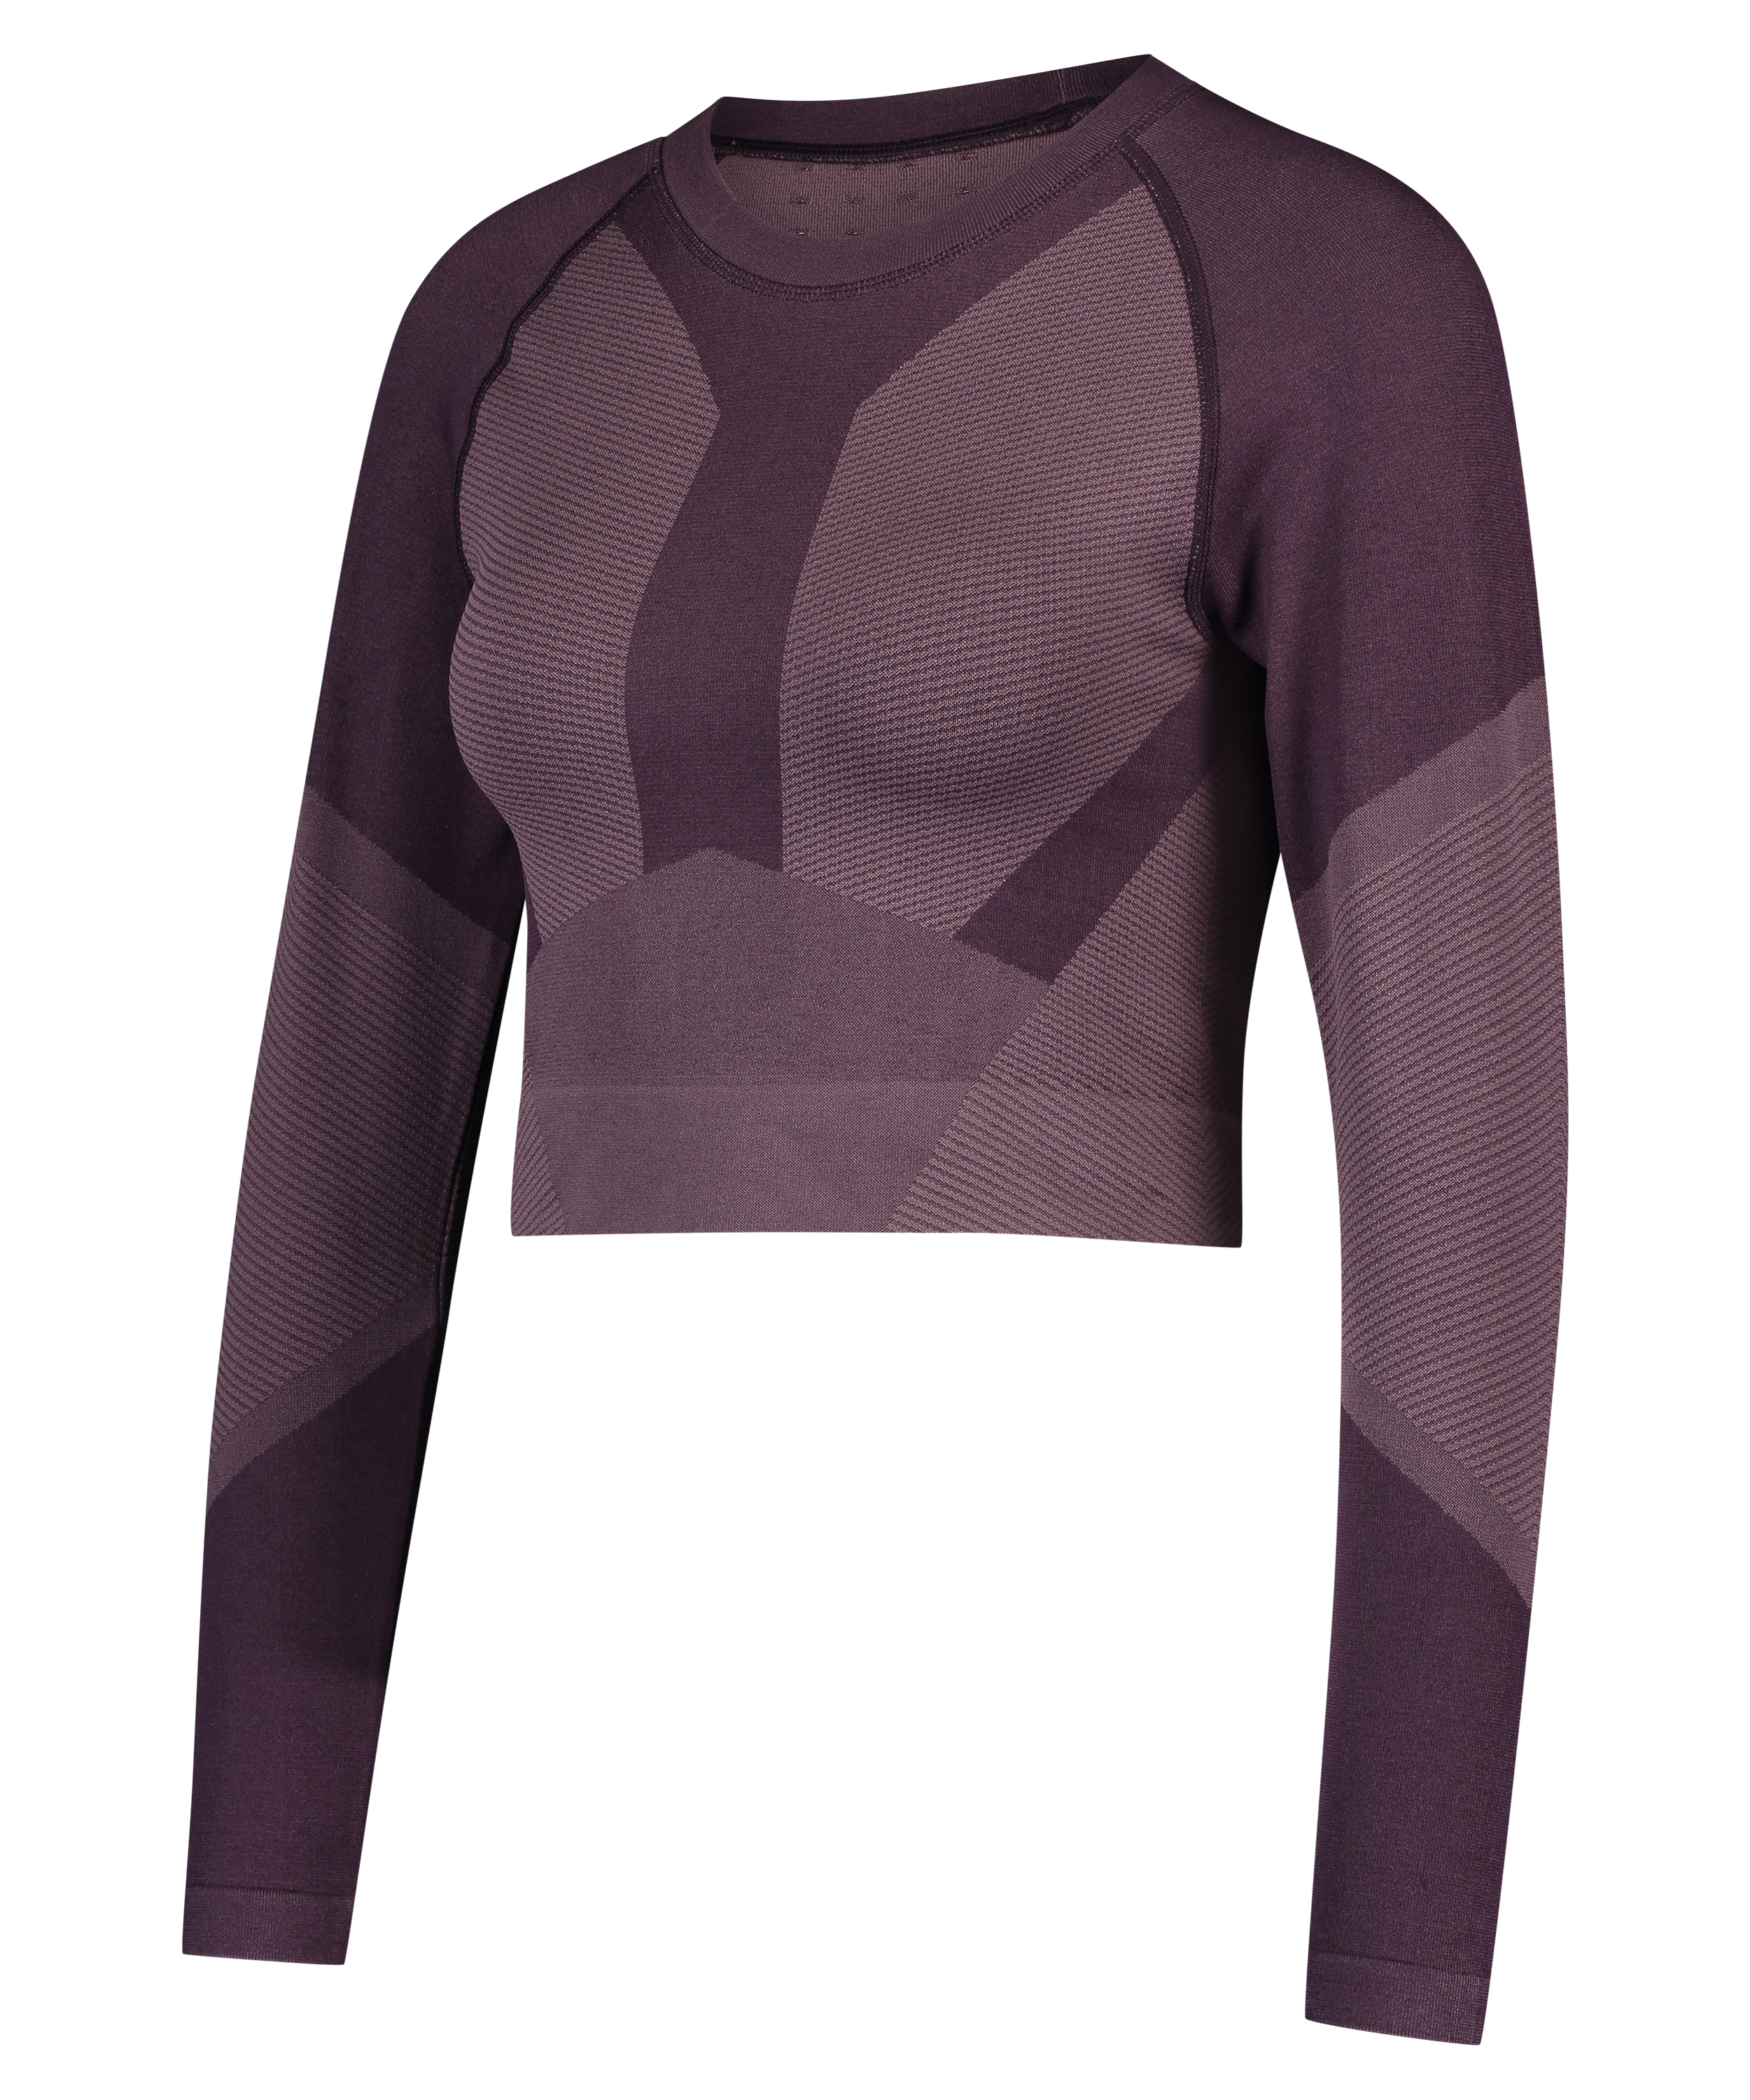 HKMX The Motion Crop Top, lilla, main